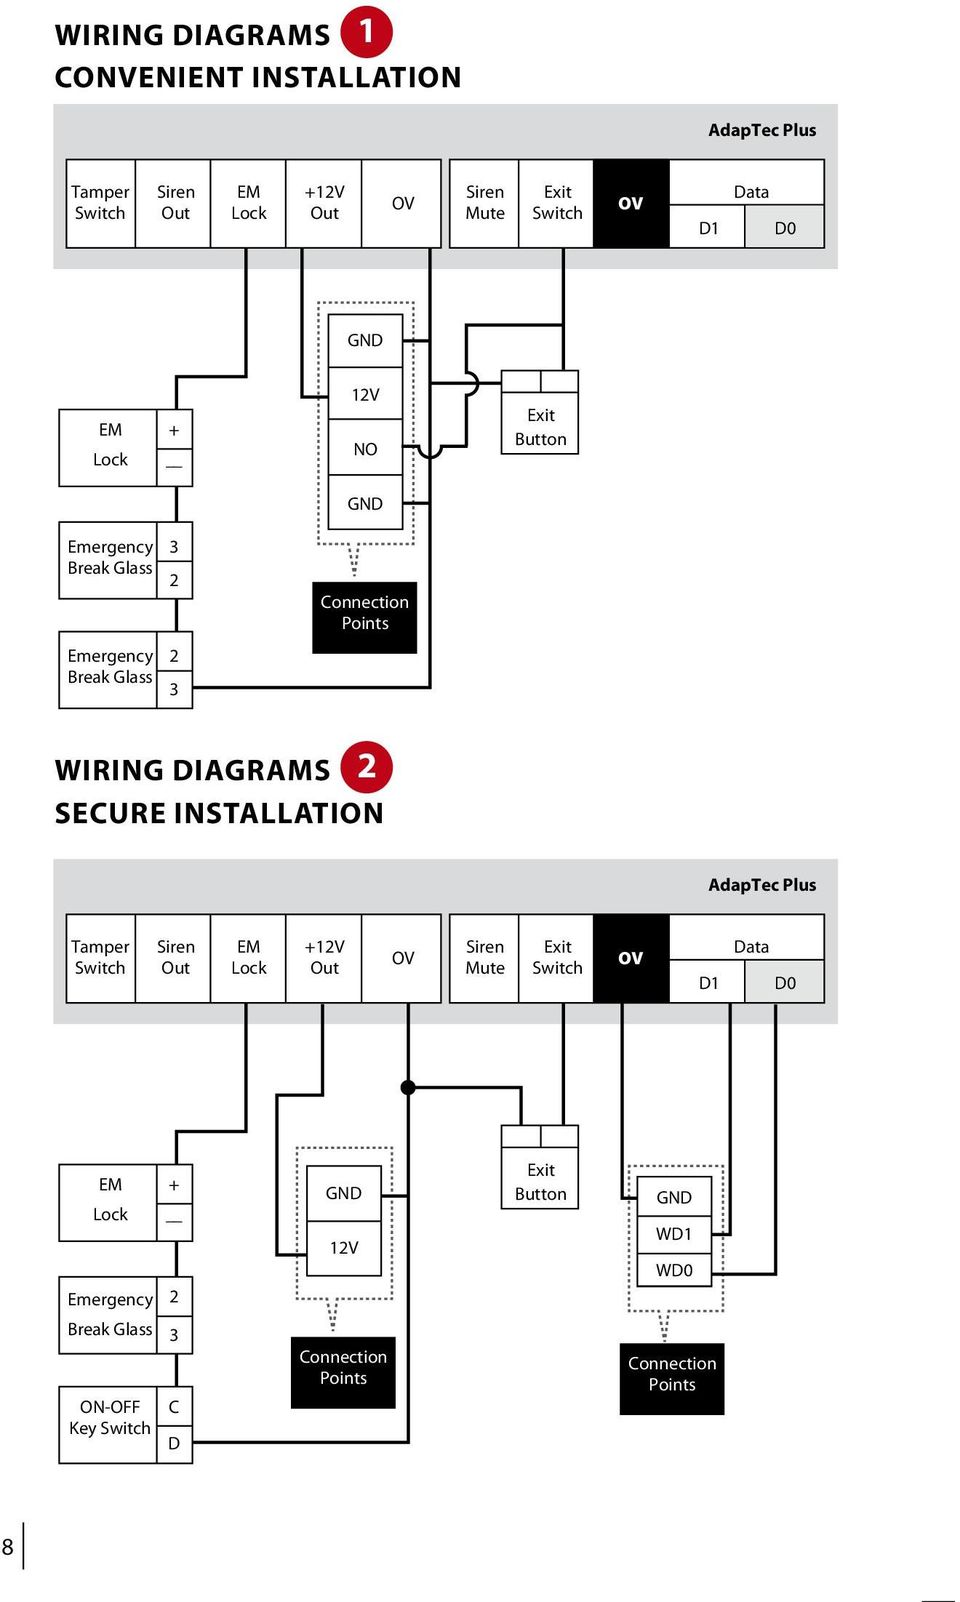 hight resolution of wiring diagrams secure installation adaptec plus tamper siren em 1v siren exit data switch out